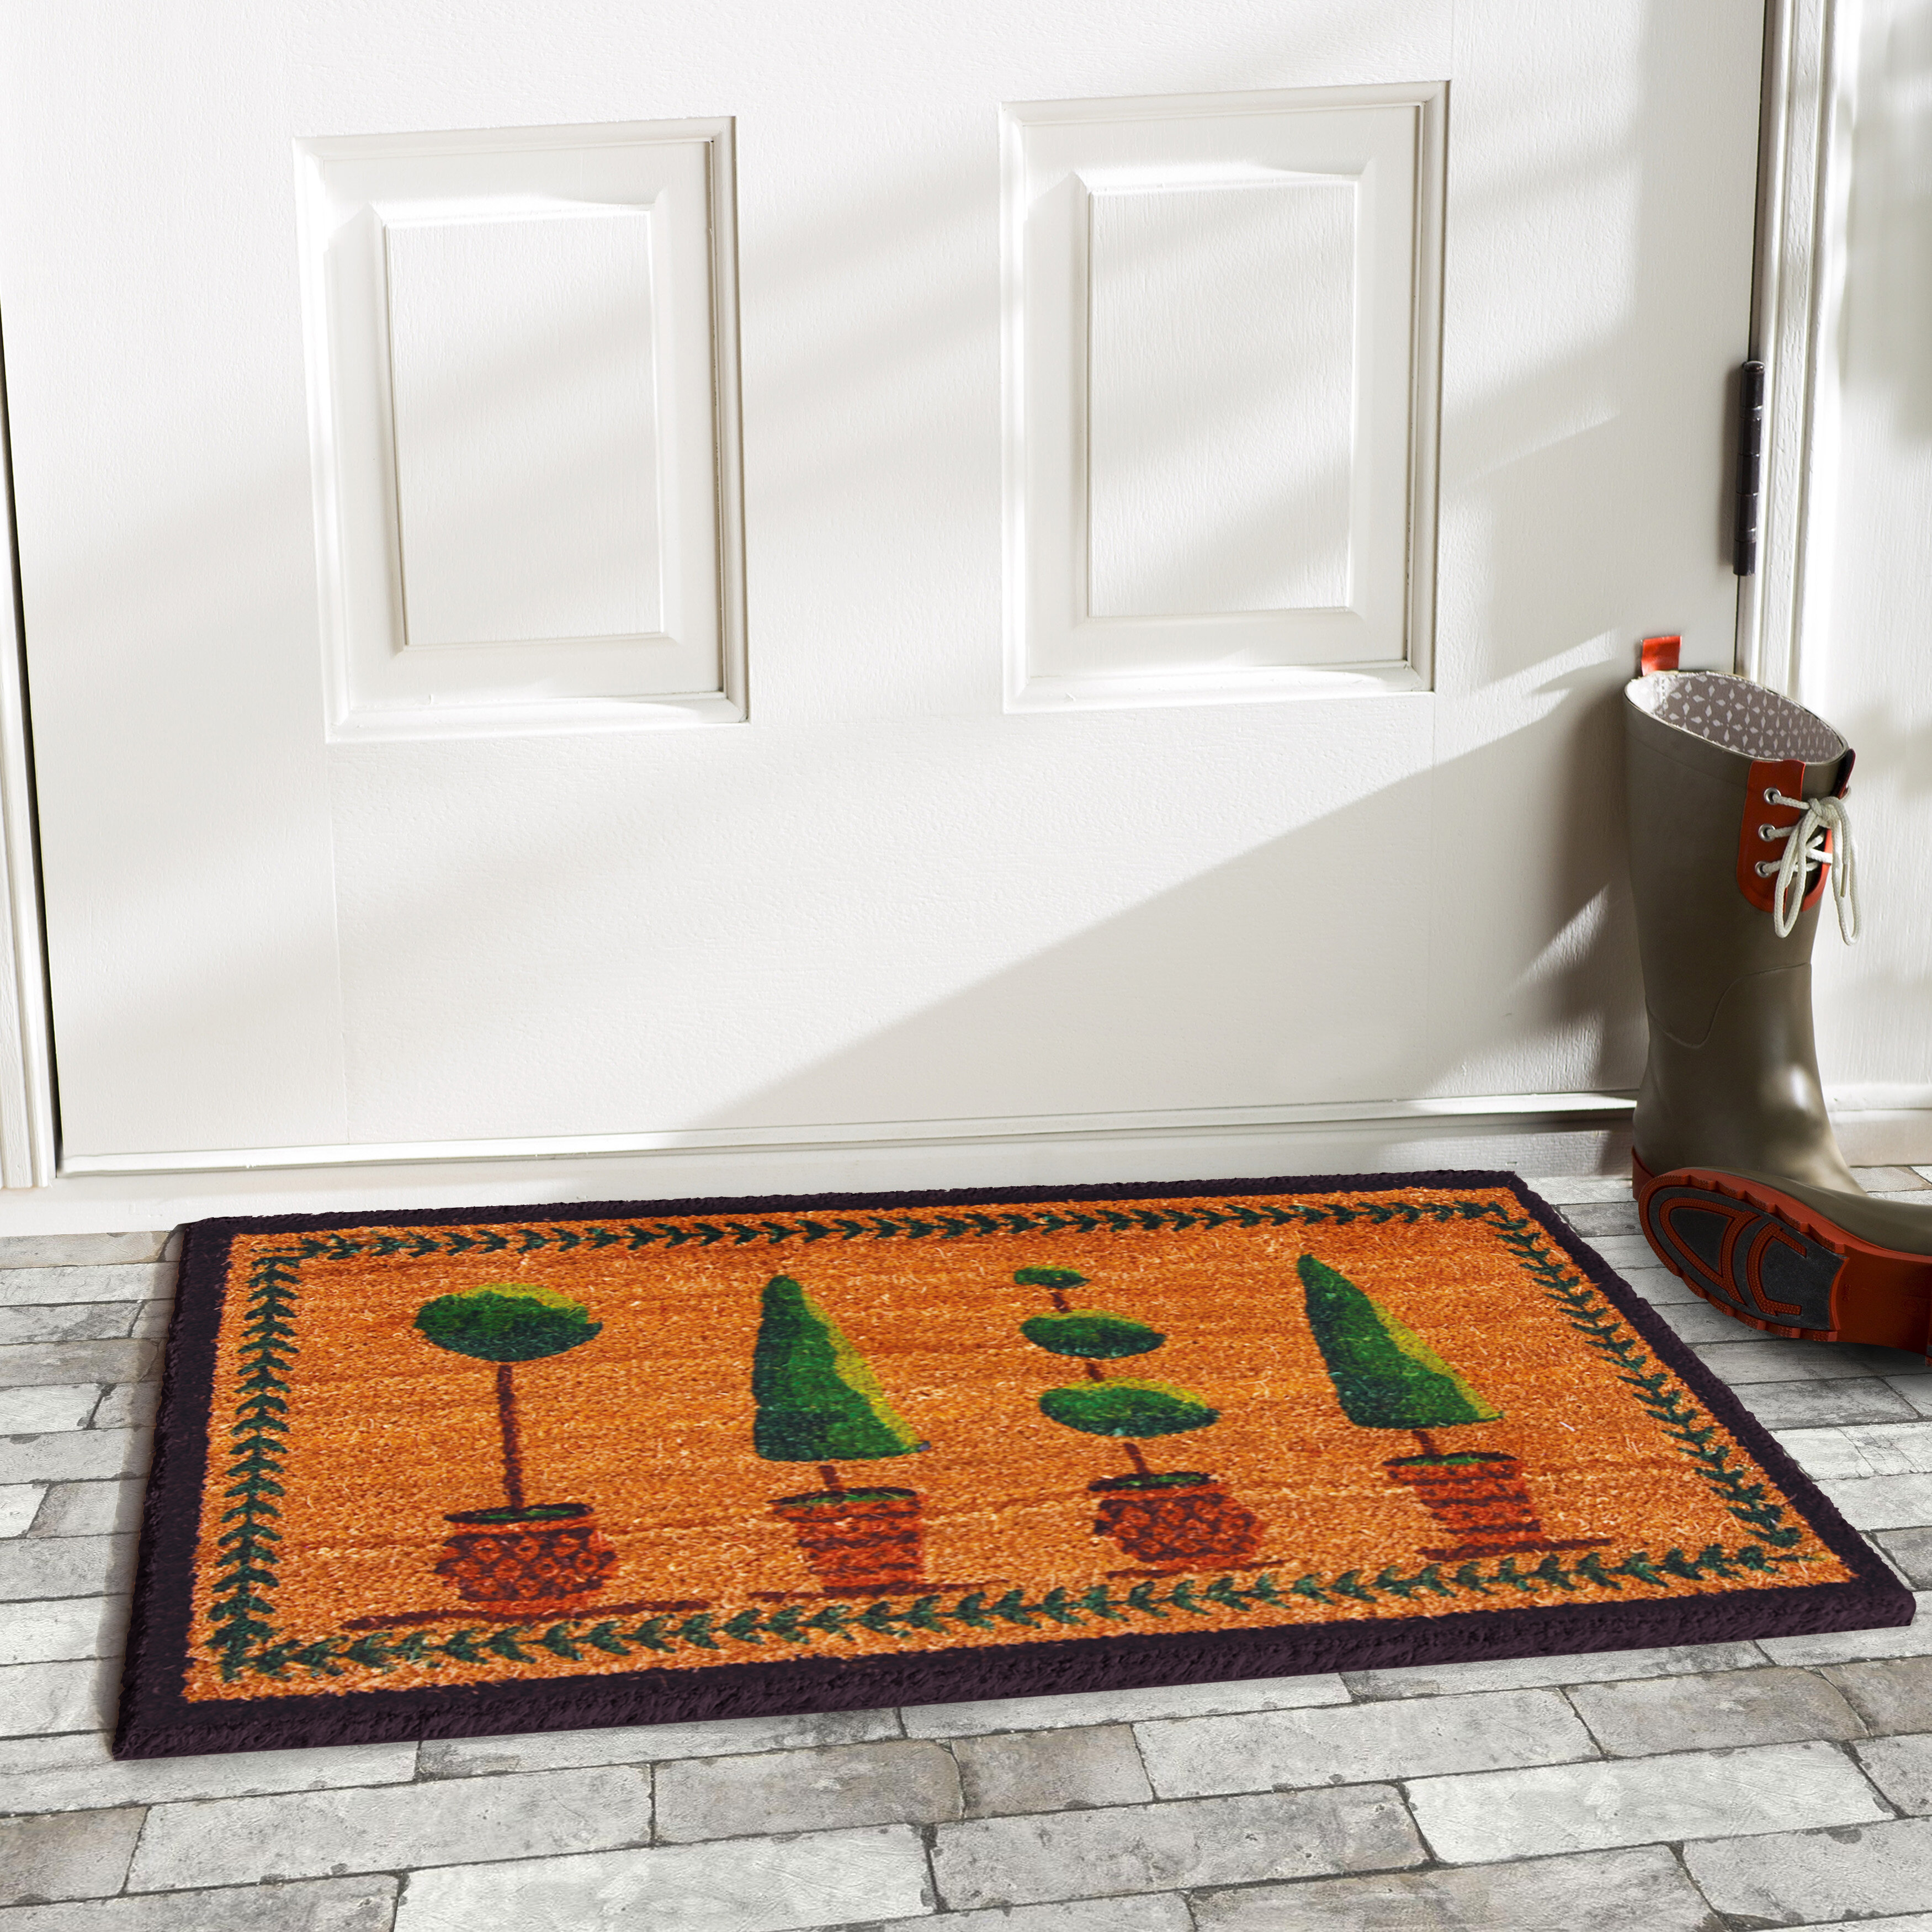 cute mats img and products cuddle door in funny come doormat welcome up mat